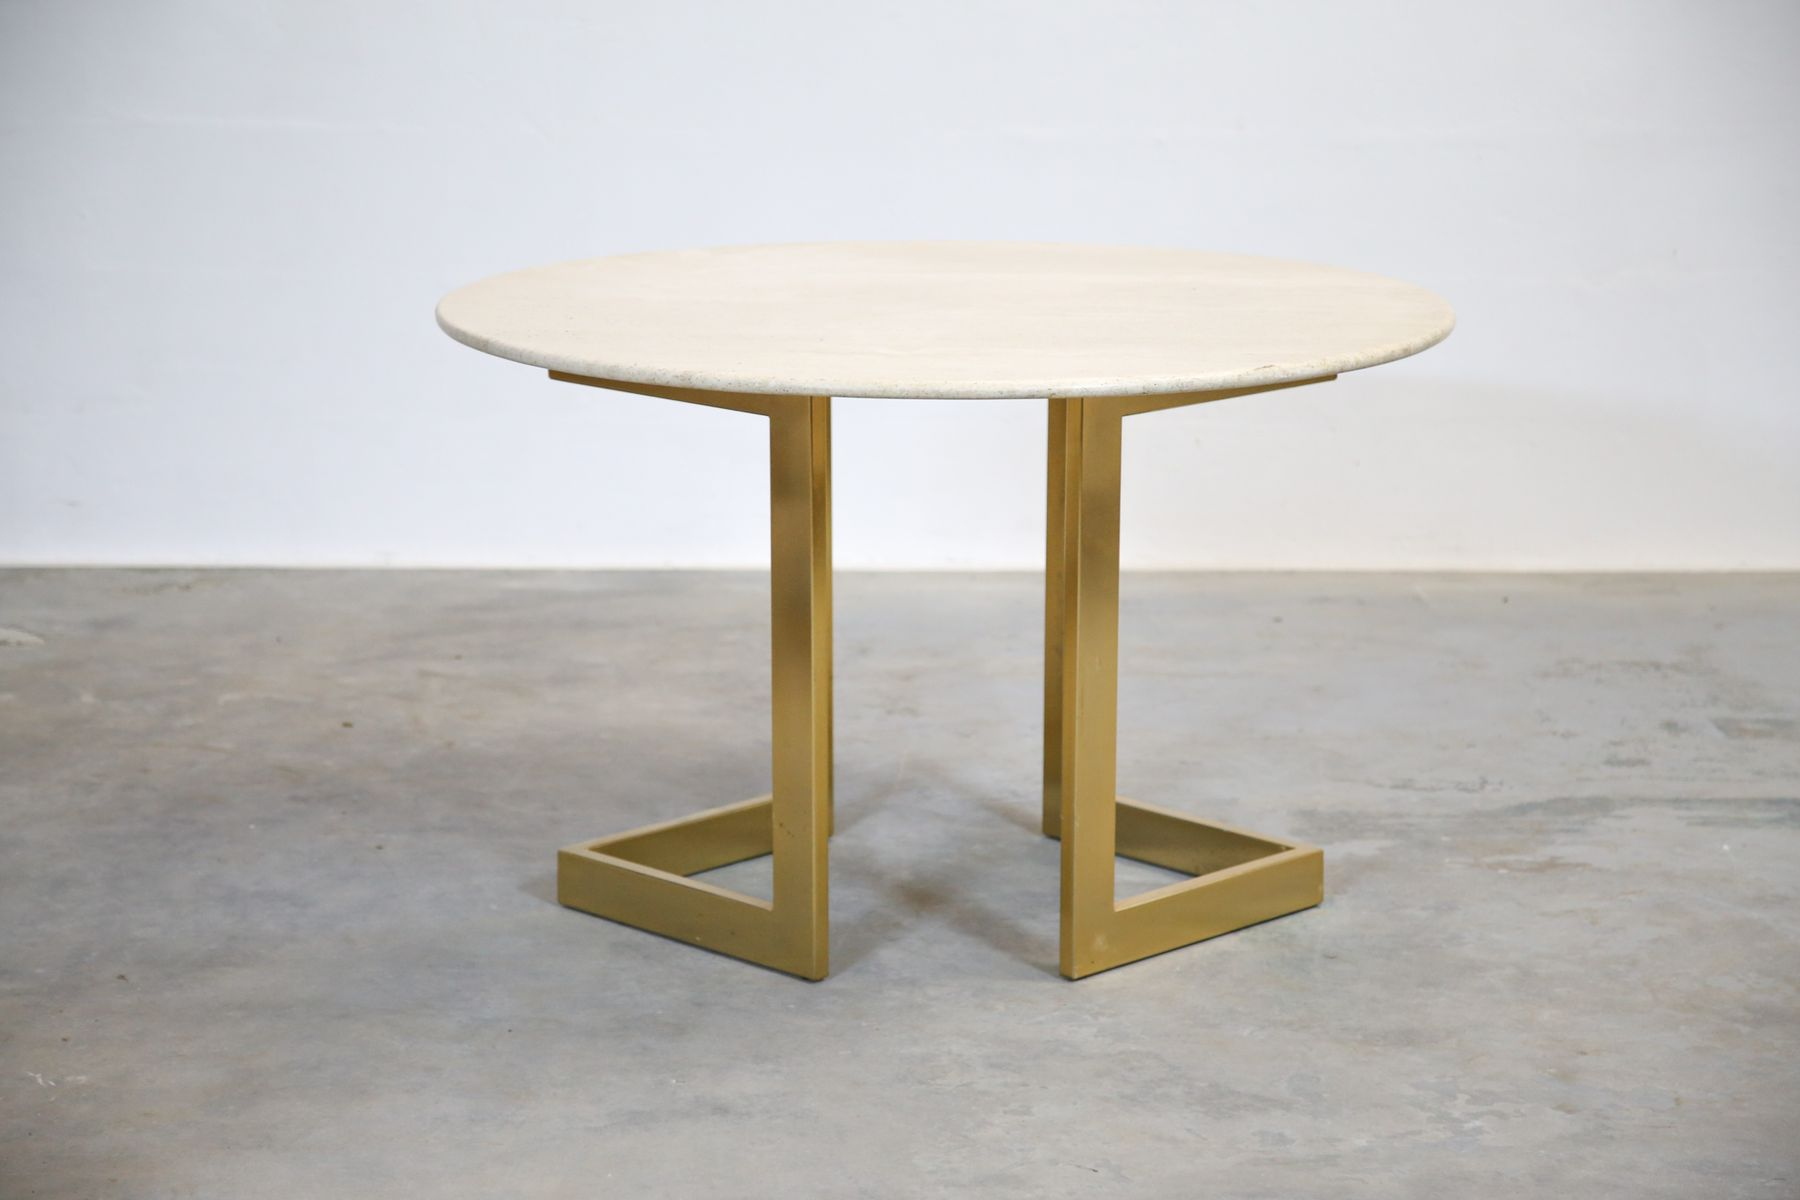 Vintage Italian Travertine Round Dining Table 1970s for sale at